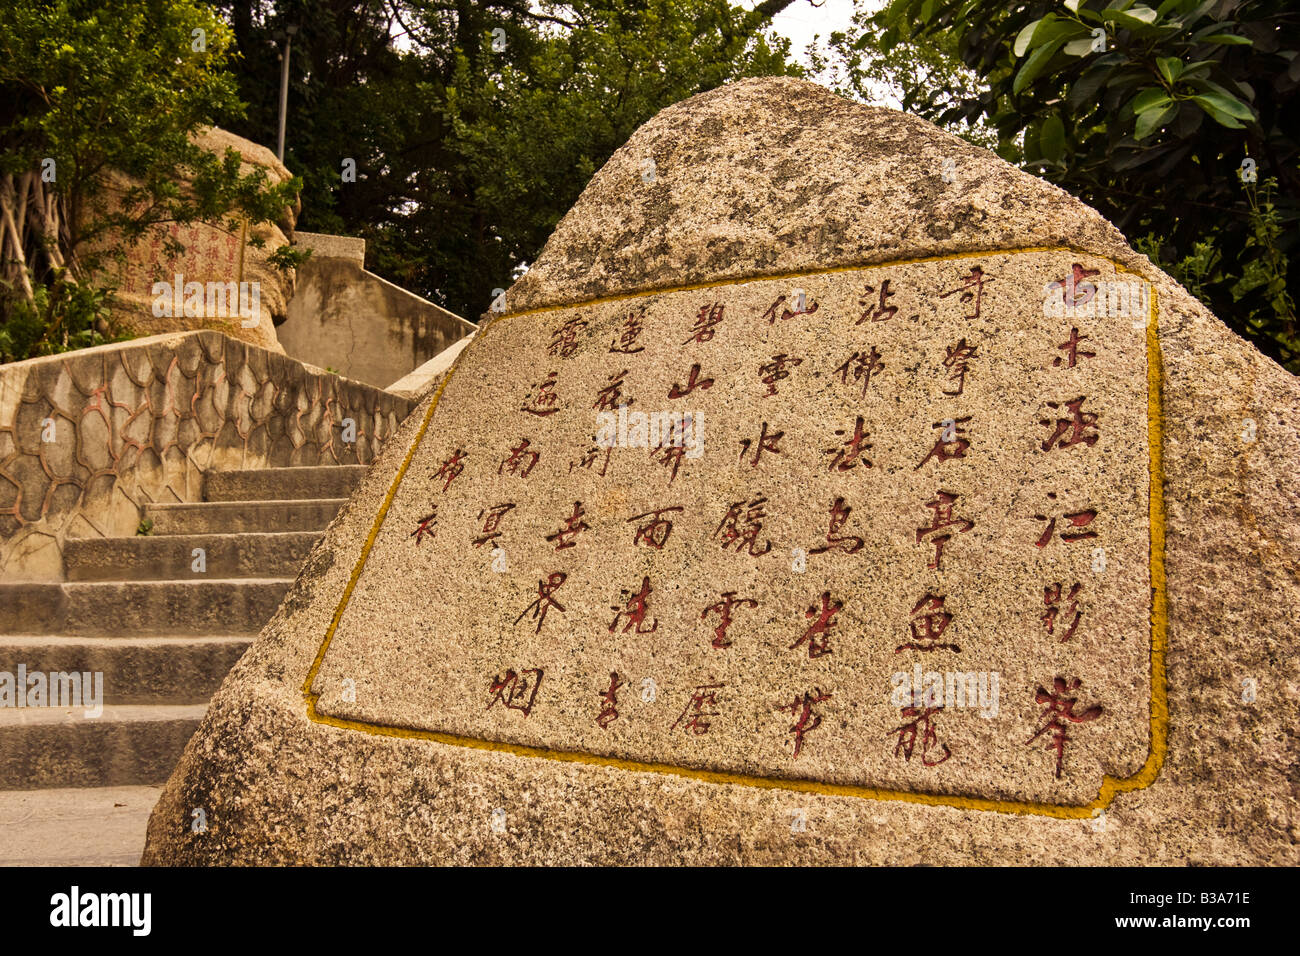 bhuddhism in china China is a large country in northern asia surrounded by russia, mongolia, tibet, burma and vietnam on the land side and the sea on the other according to.